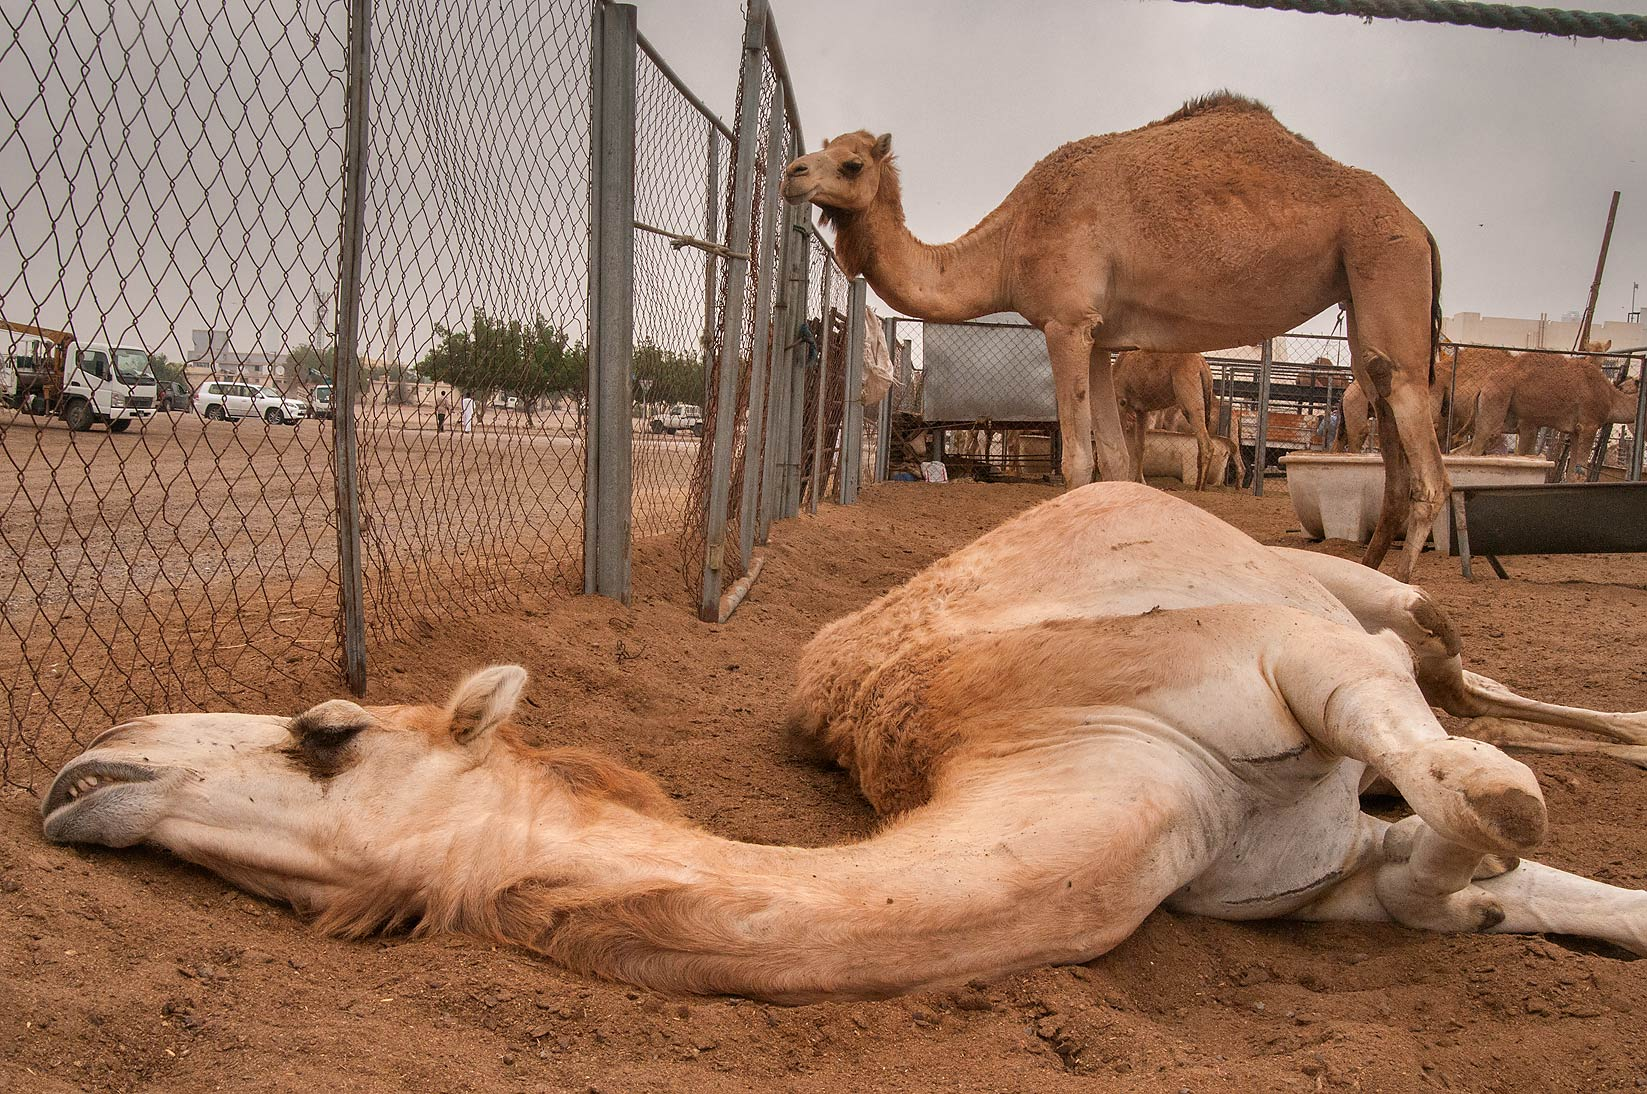 Camel sleeping in dust in a pen in livestock market, Abu Hamour area. Doha, Qatar